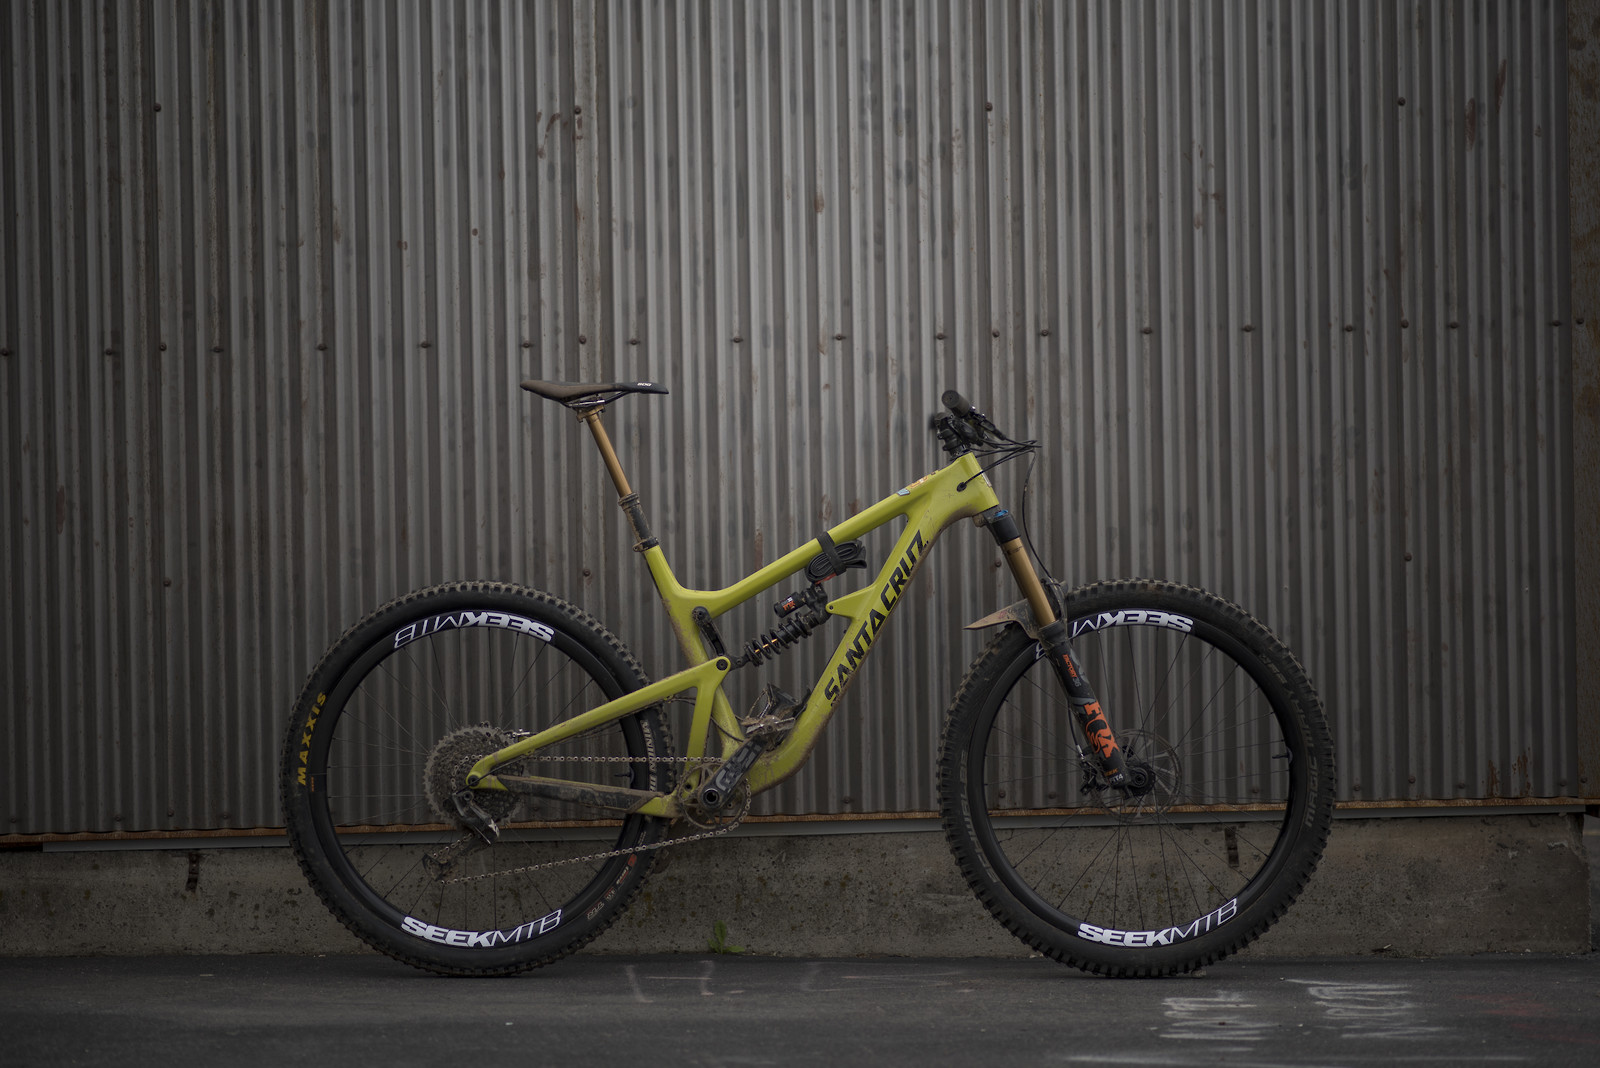 2018 Hightower LT X01, Fox Factory, and Seek Transcend 29i wheelset.